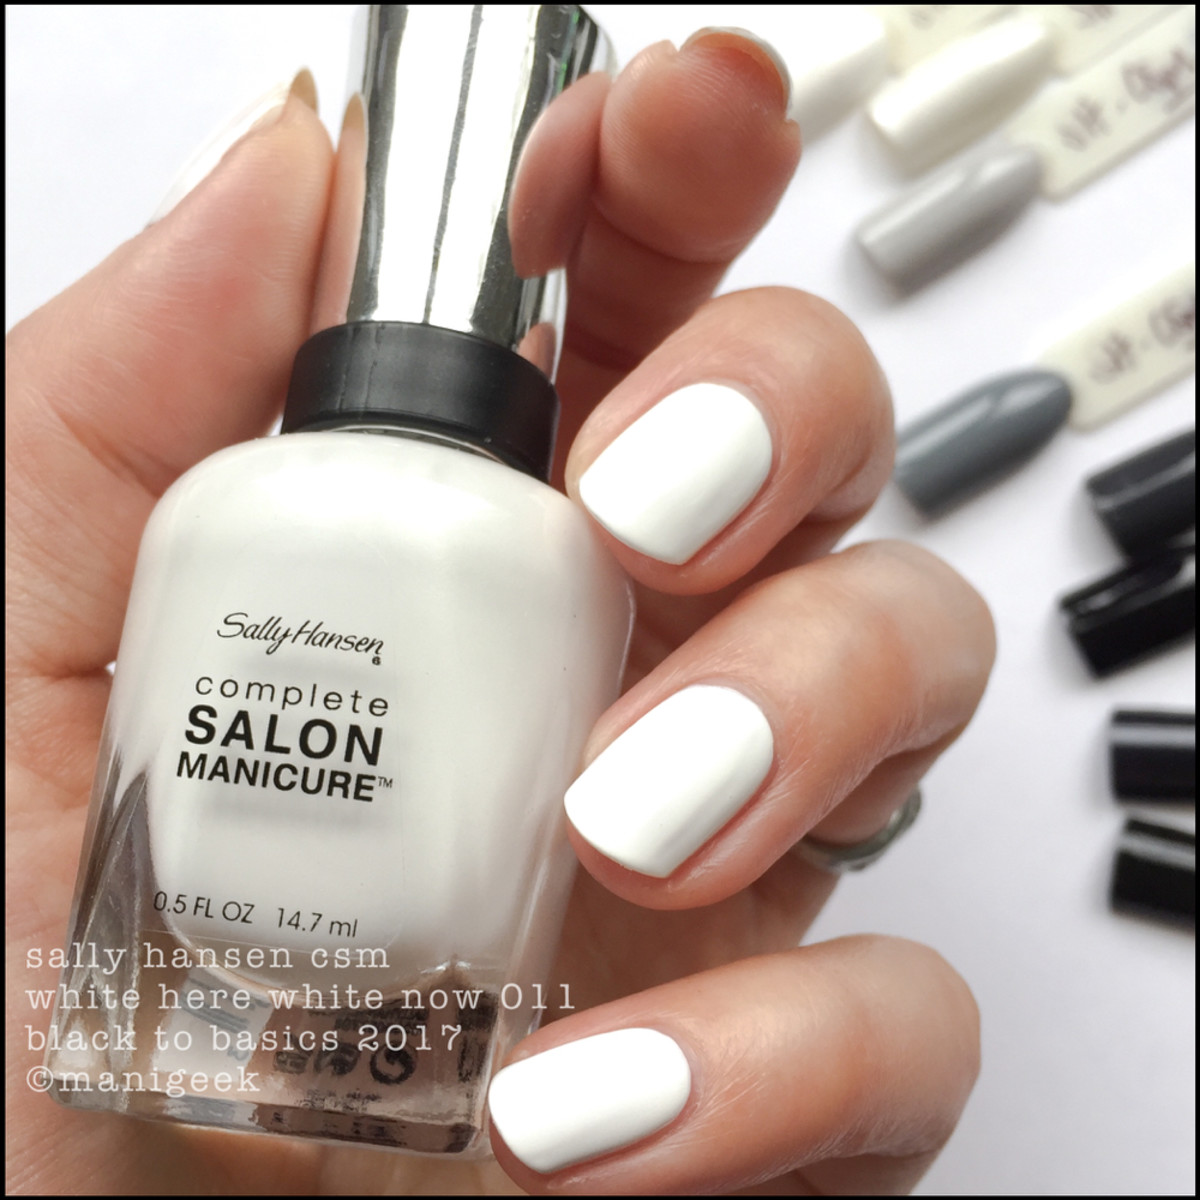 Sally Hansen White Here White Now _ Sally Hansen Black to Basics Collection Swatches 2017